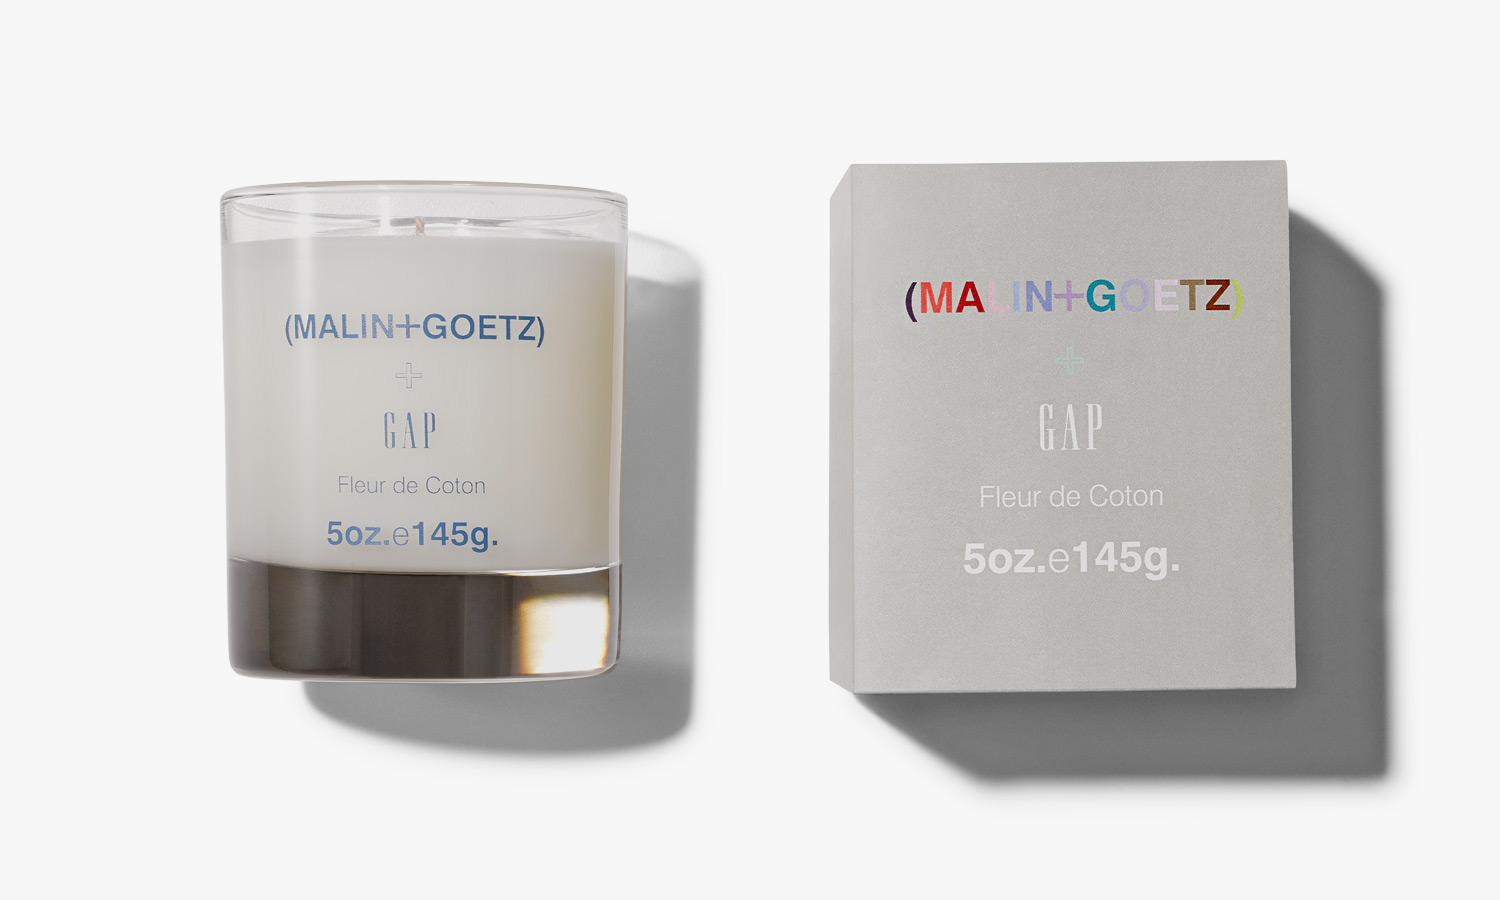 gap-malin-geotz-holiday-2014-candle-00